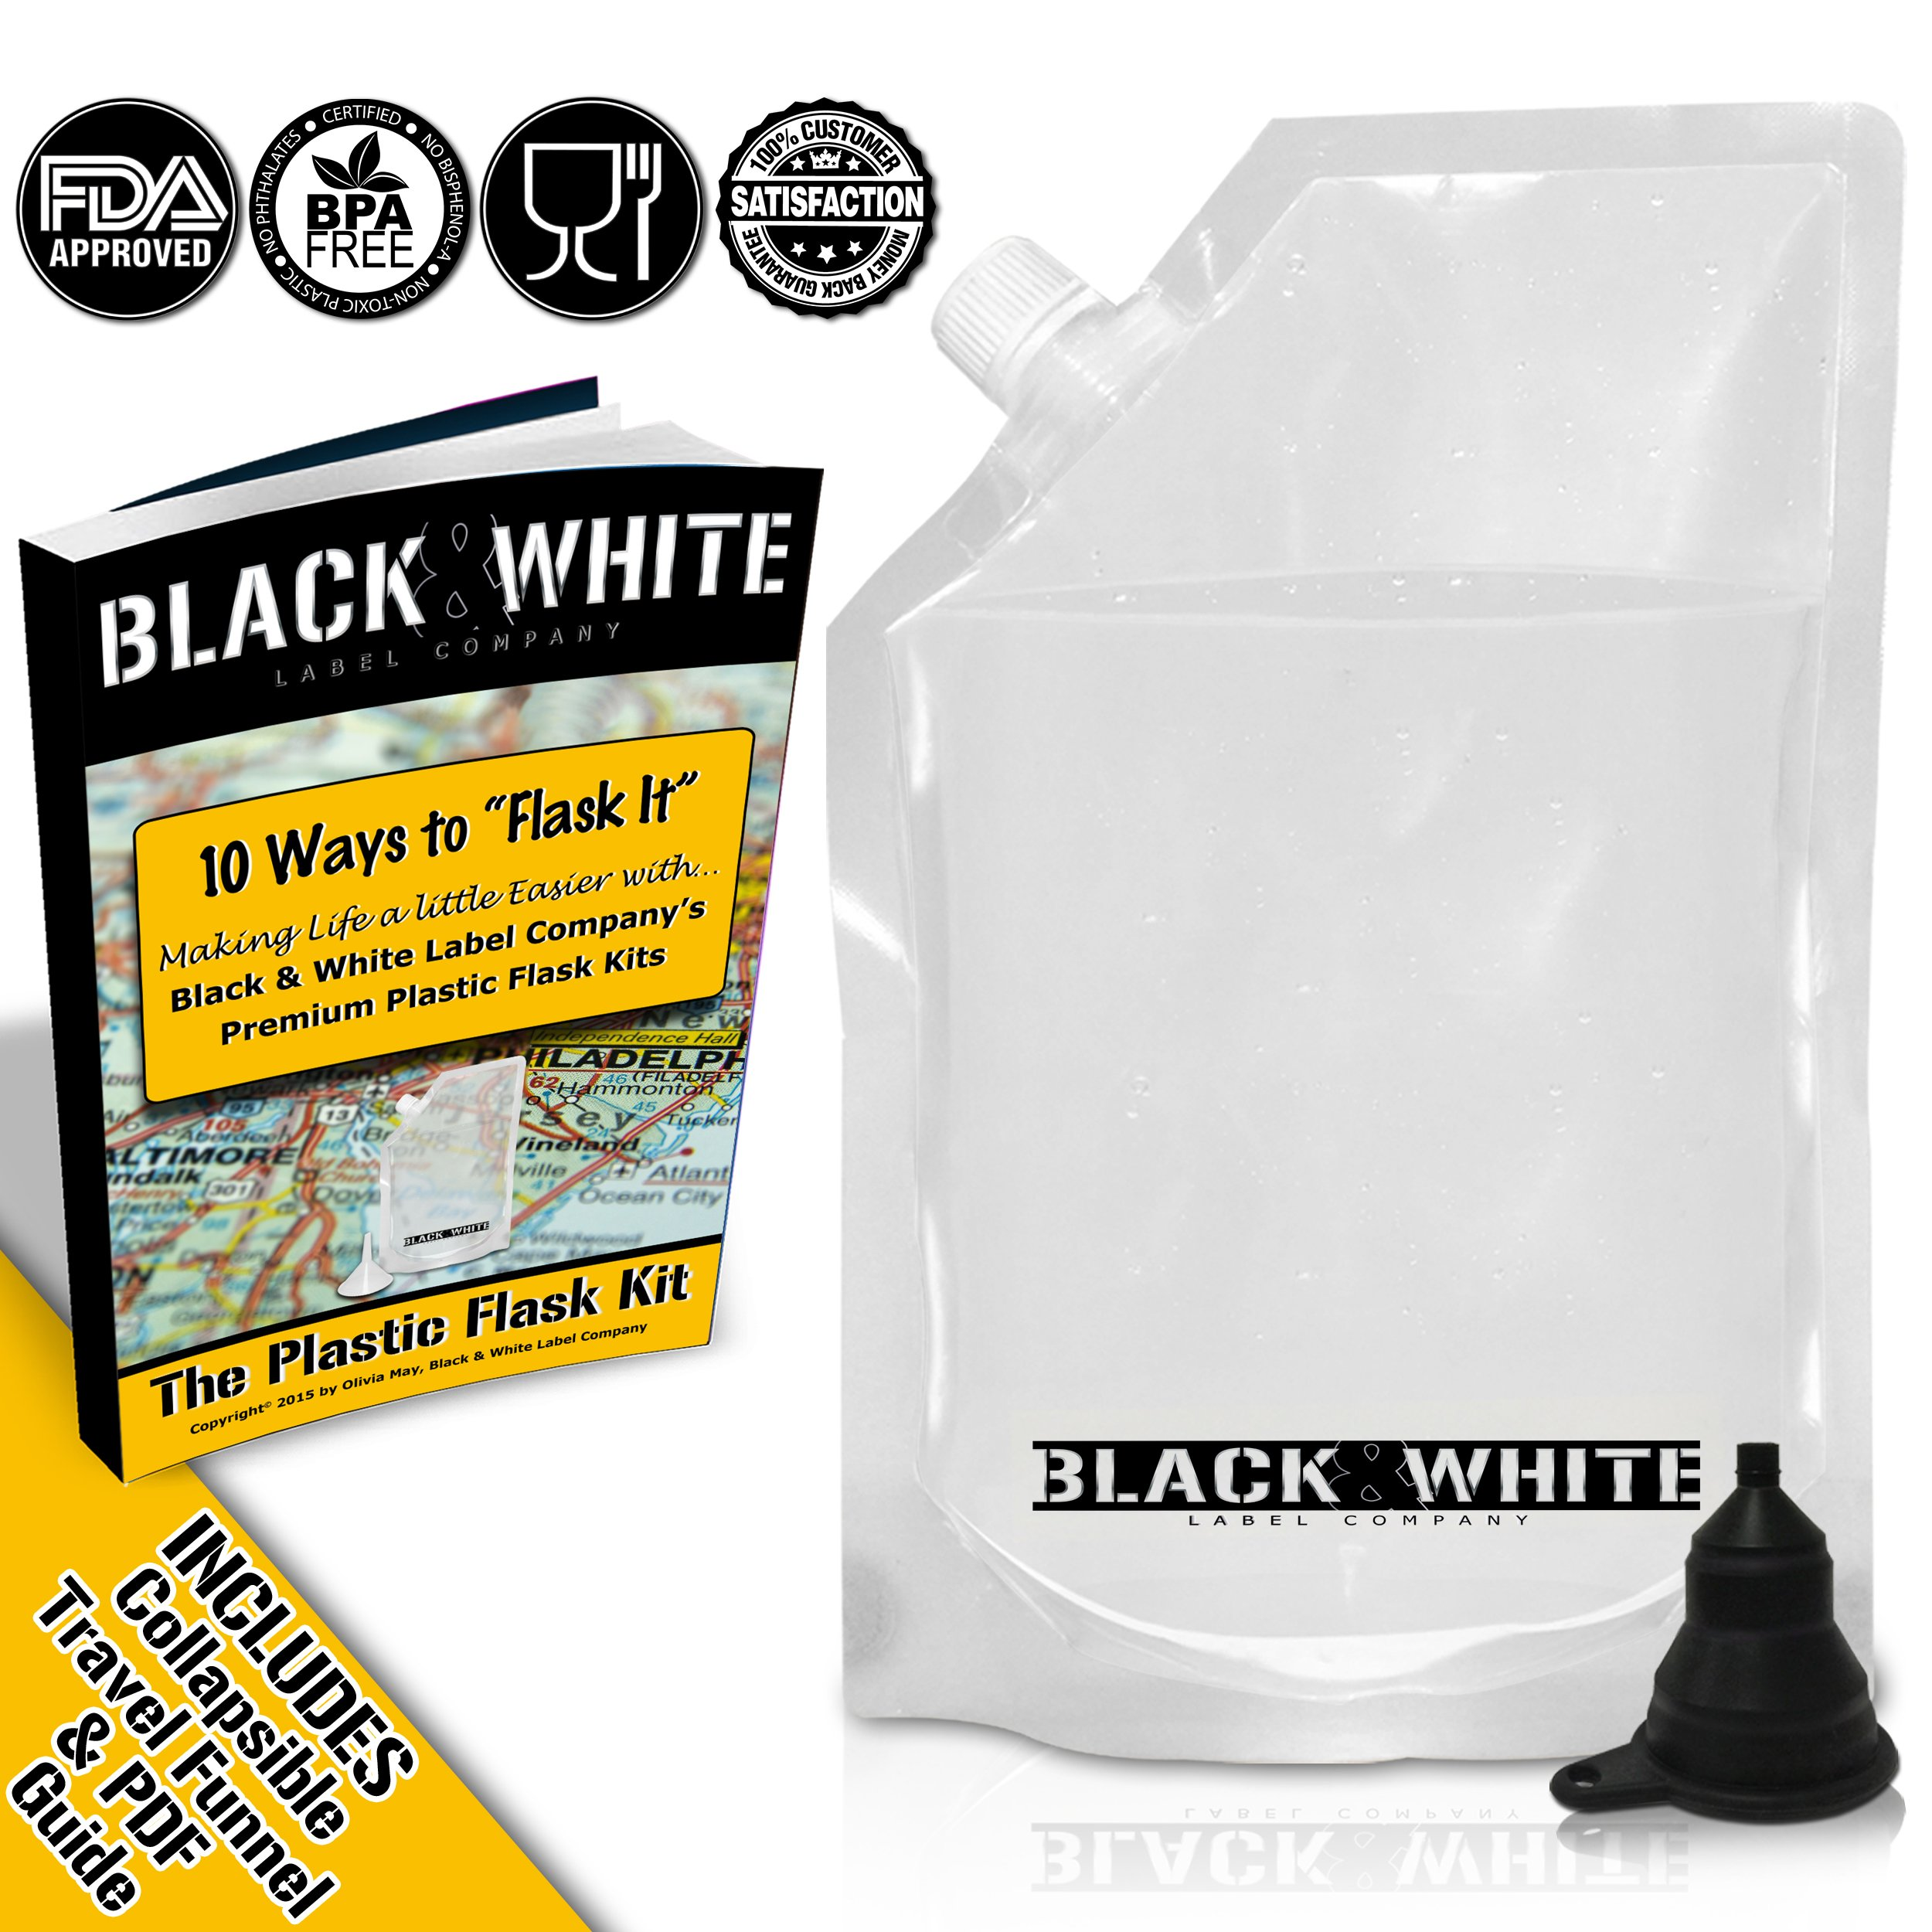 (9) Black & White Label Plastic Flasks Liquor Flask Rum Runner Cruise Kit Sneak Alcohol Drink Wine Pouch Bag Set Concealable Flasks For Booze (3x32oz + 3x16oz + 3x8oz + Wine To Go Flask +Funnel) by Black & White Label Company (Image #2)